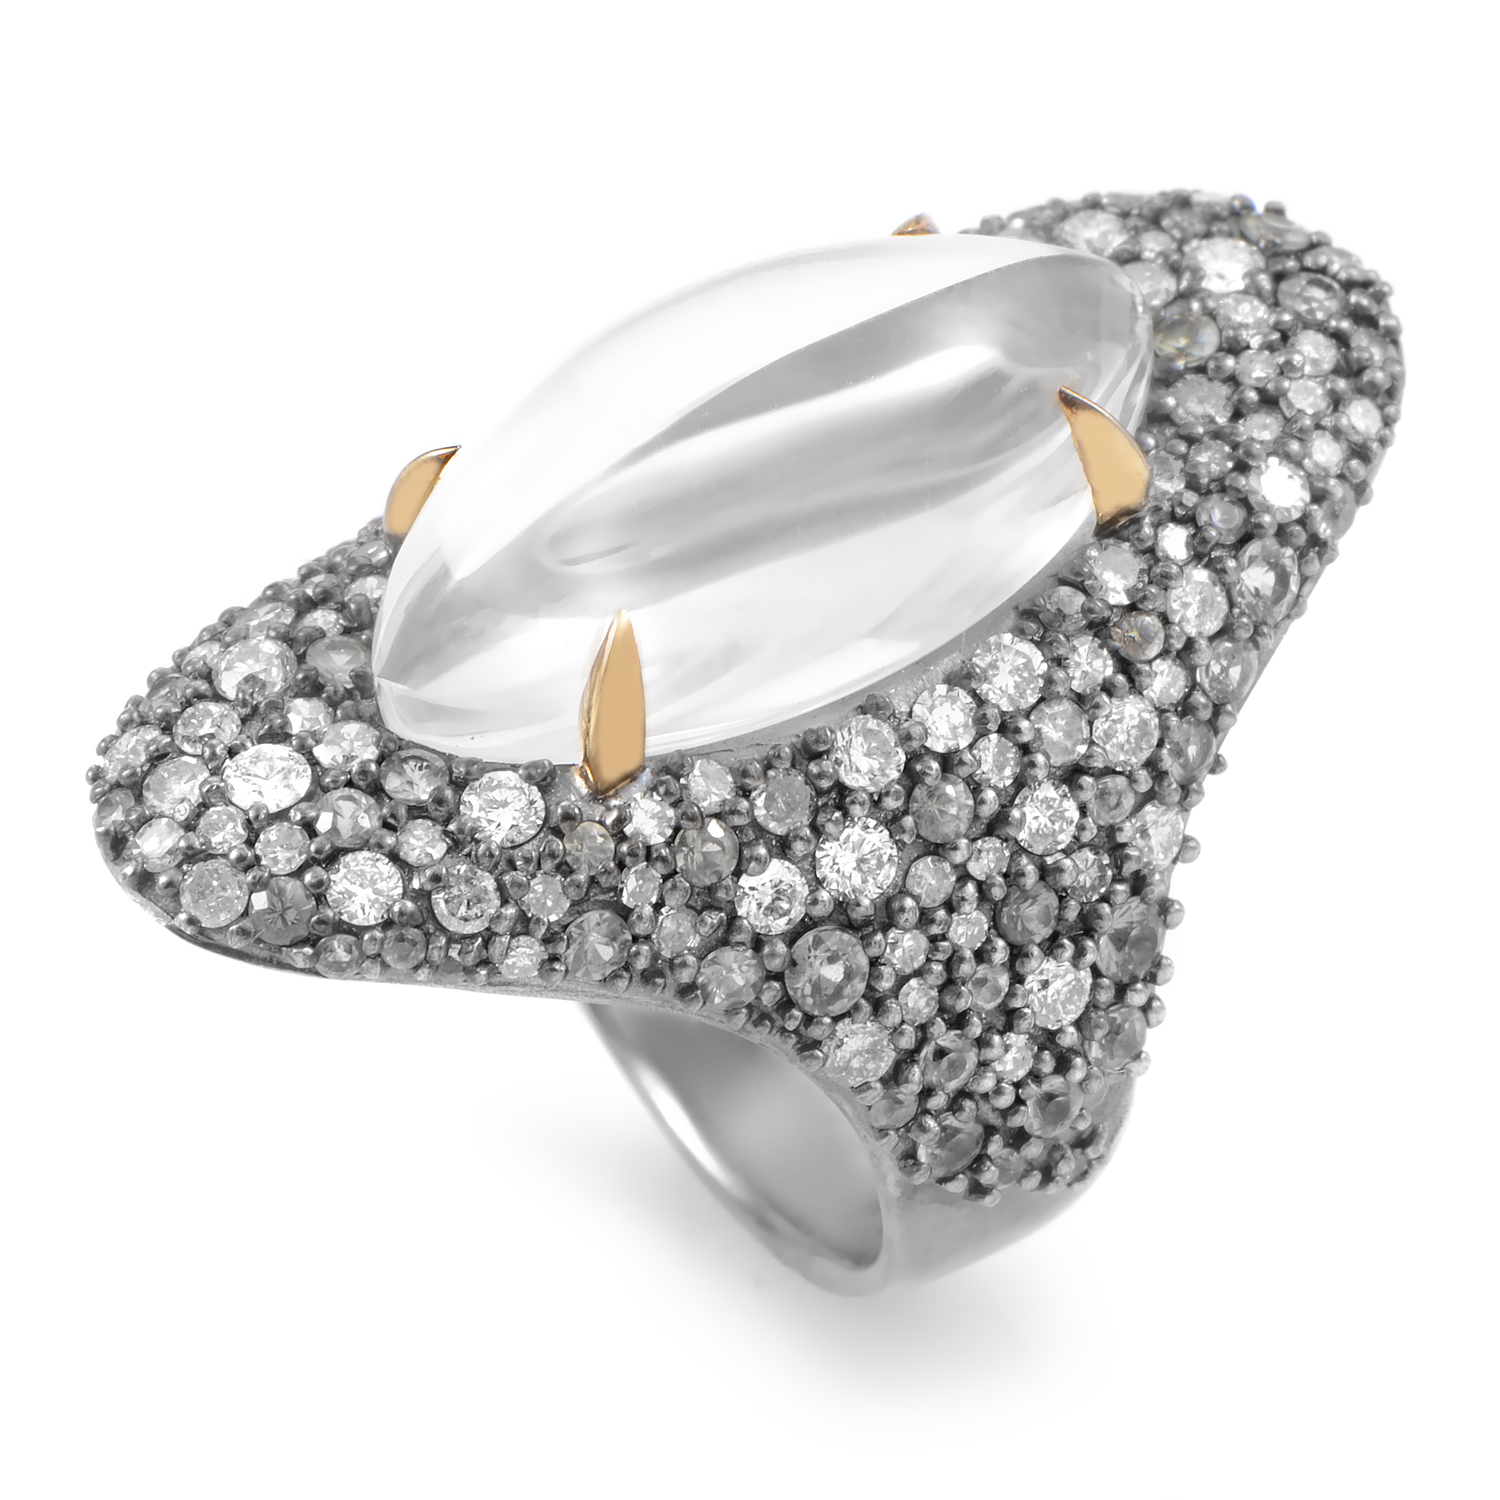 Women's Sterling Silver Diamond & Gray Gemstone Cocktail Ring